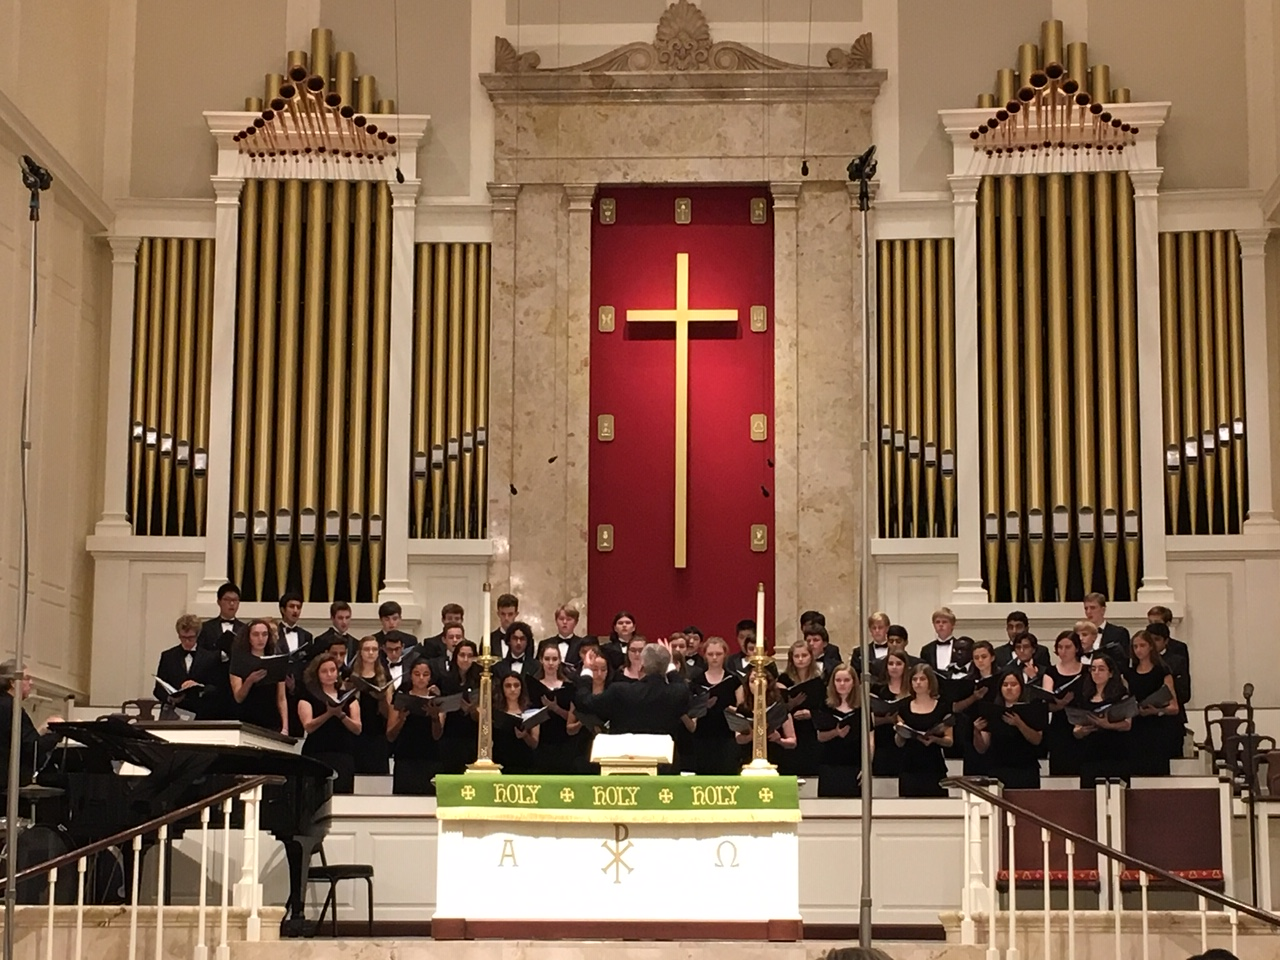 Chorale, one of the Upper School choirs, performs at the Fall Choral Concert, which took place on Oct. 15.